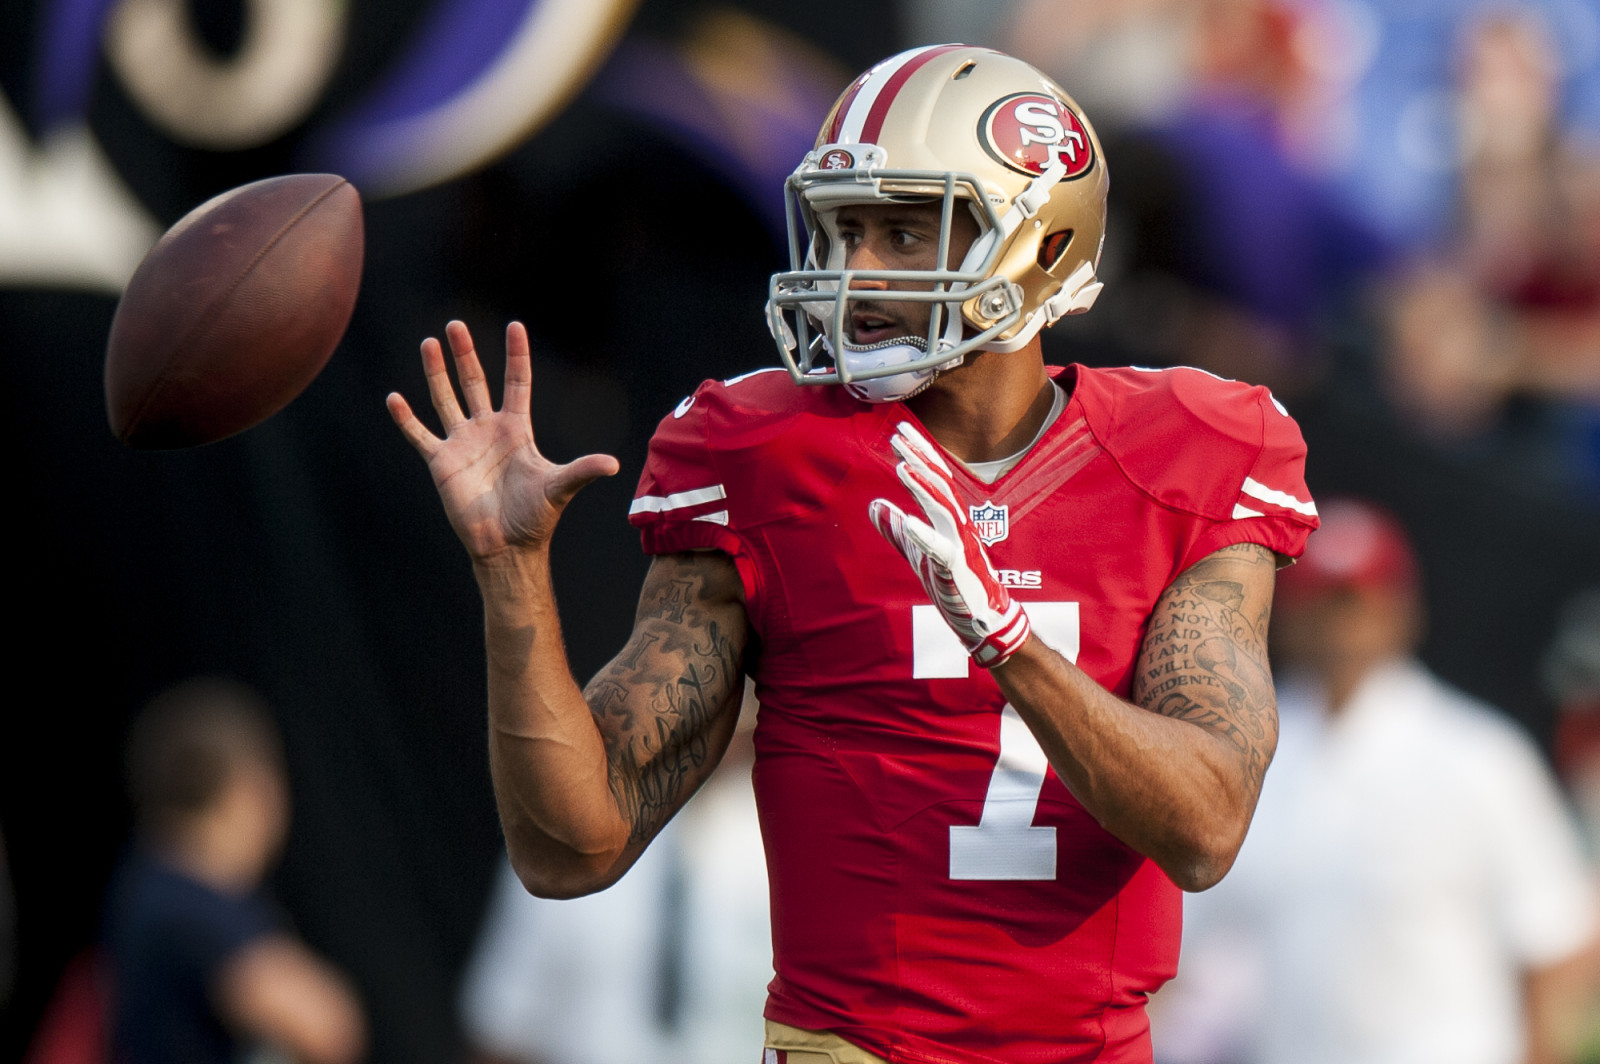 San Francisco 49ers quarterback Colin Kaepernick warms up before their first pre-season game against the Baltimore Ravens at M&T Bank Stadium on August 7, 2014 in Baltimore, Maryland. UPI/Pete Marovich